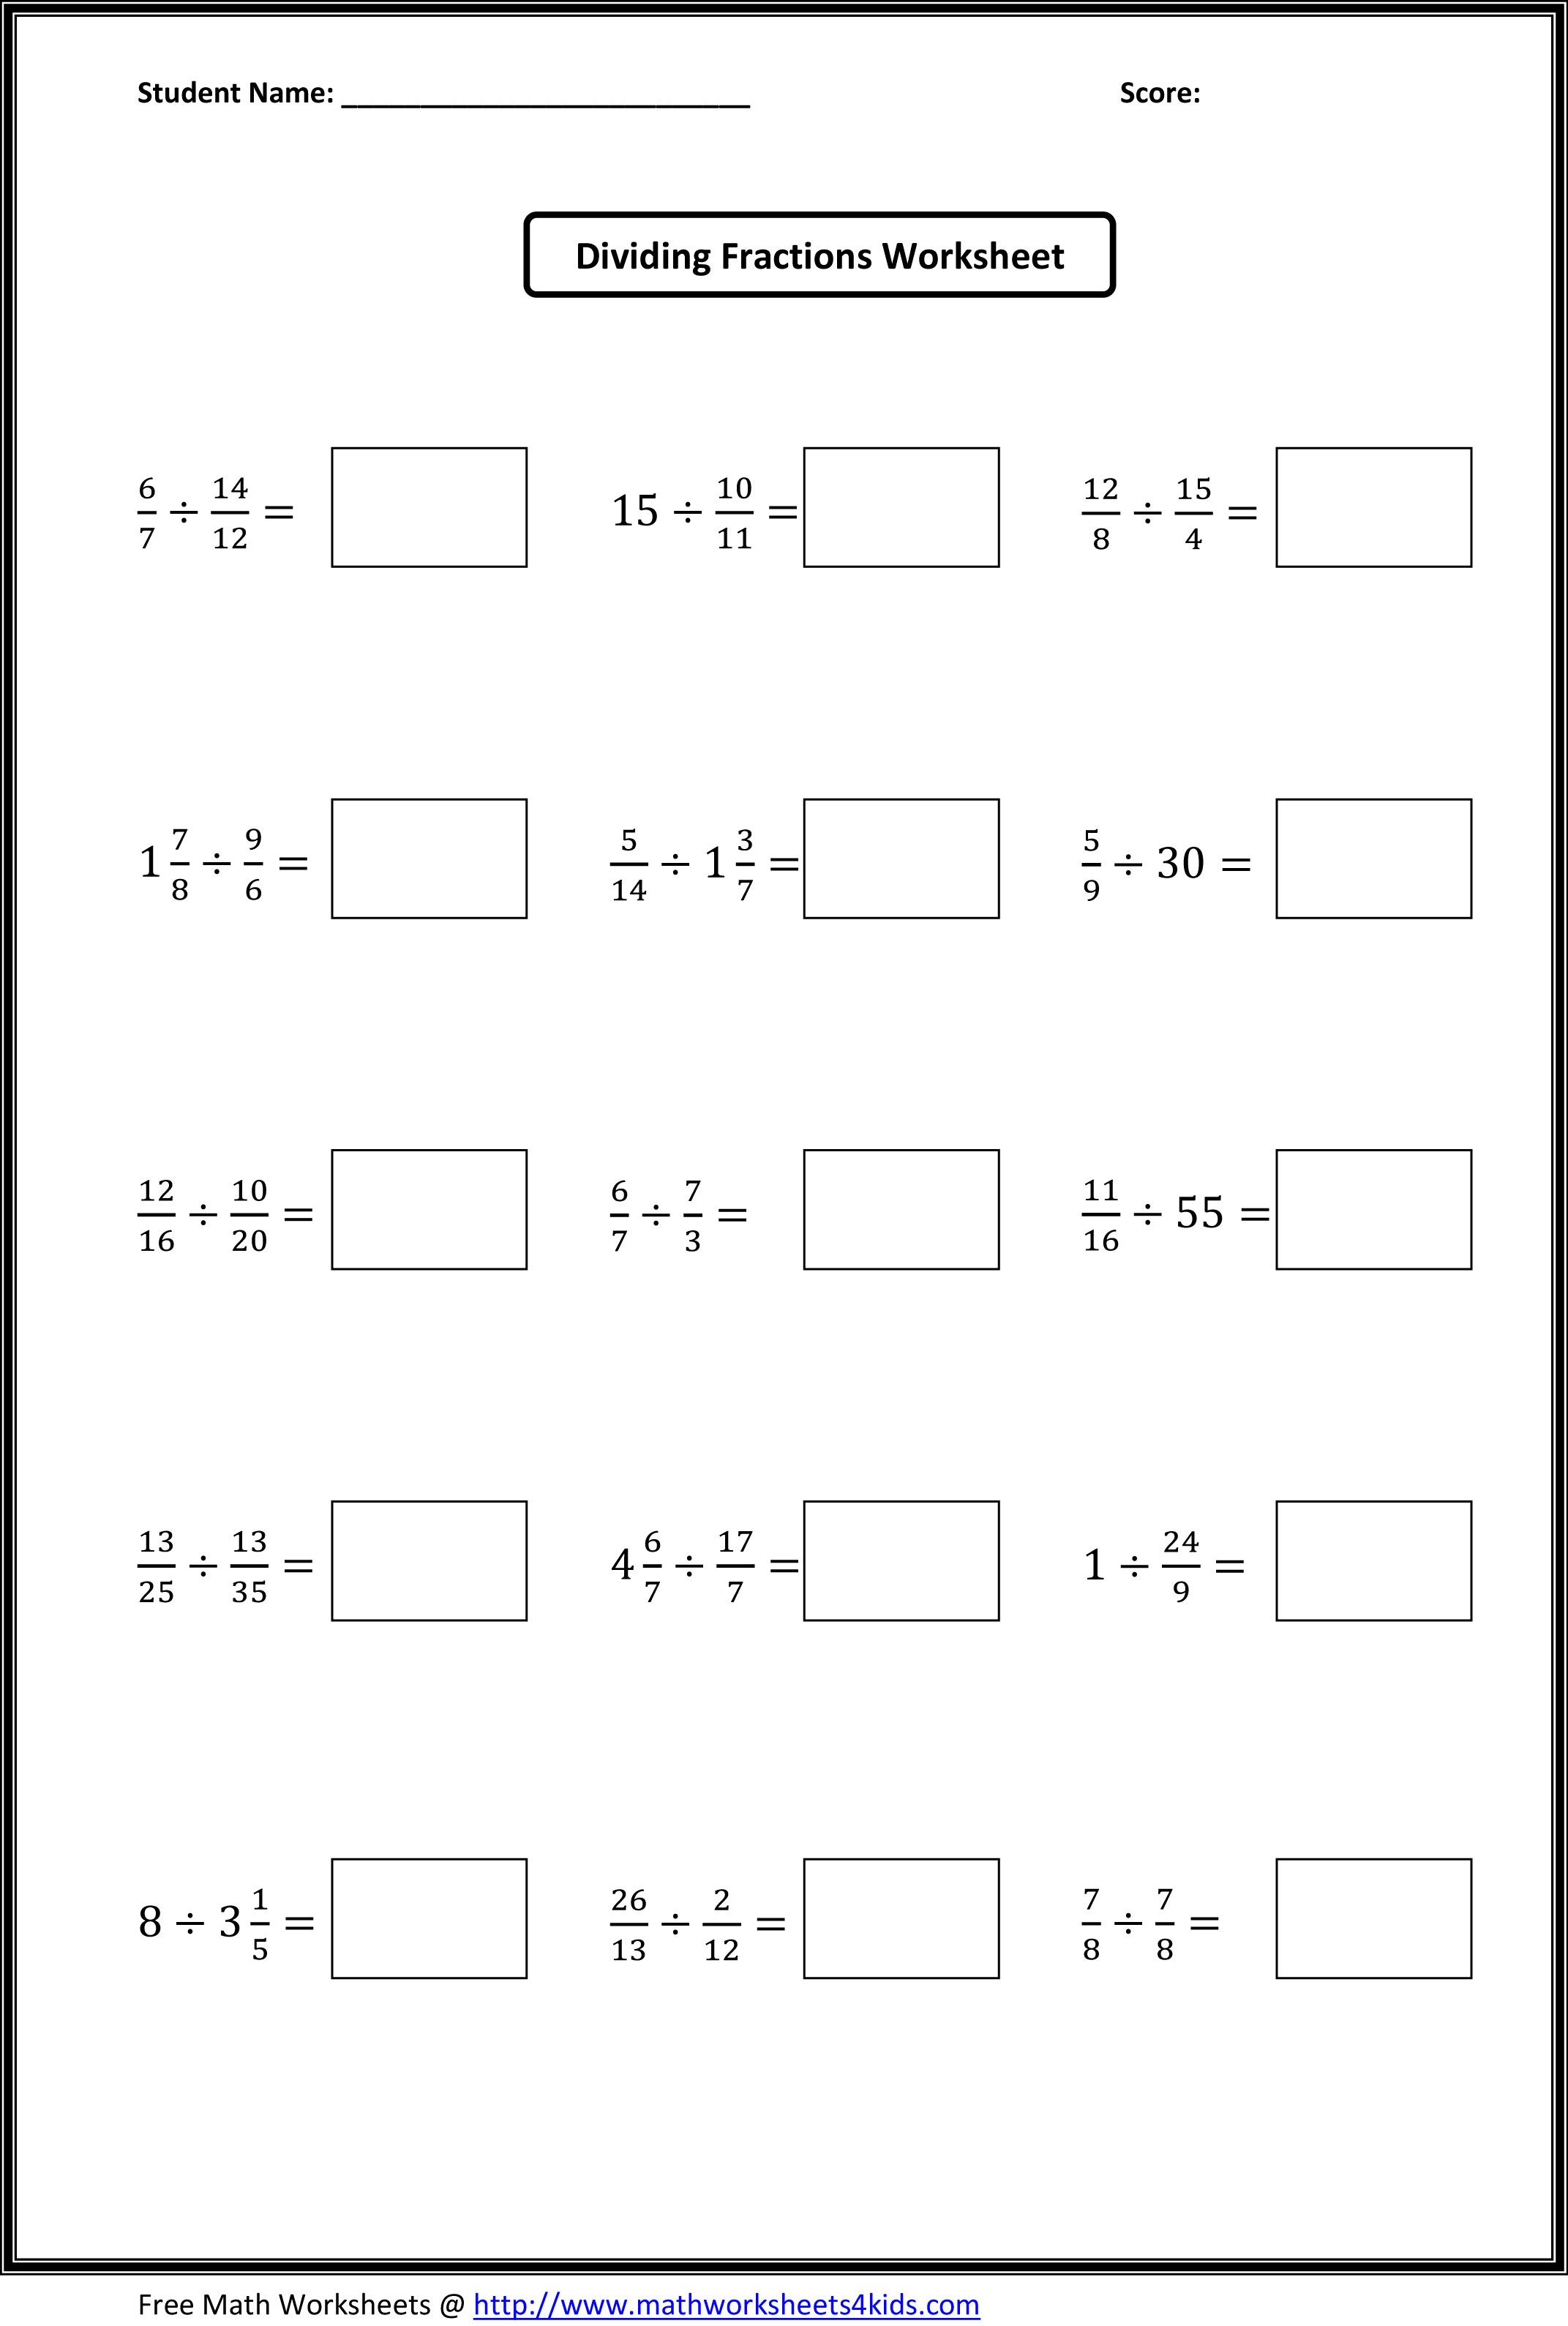 Worksheets Dividing Fractions Worksheet 6th Grade dividing fractions worksheets whats new pinterest worksheets